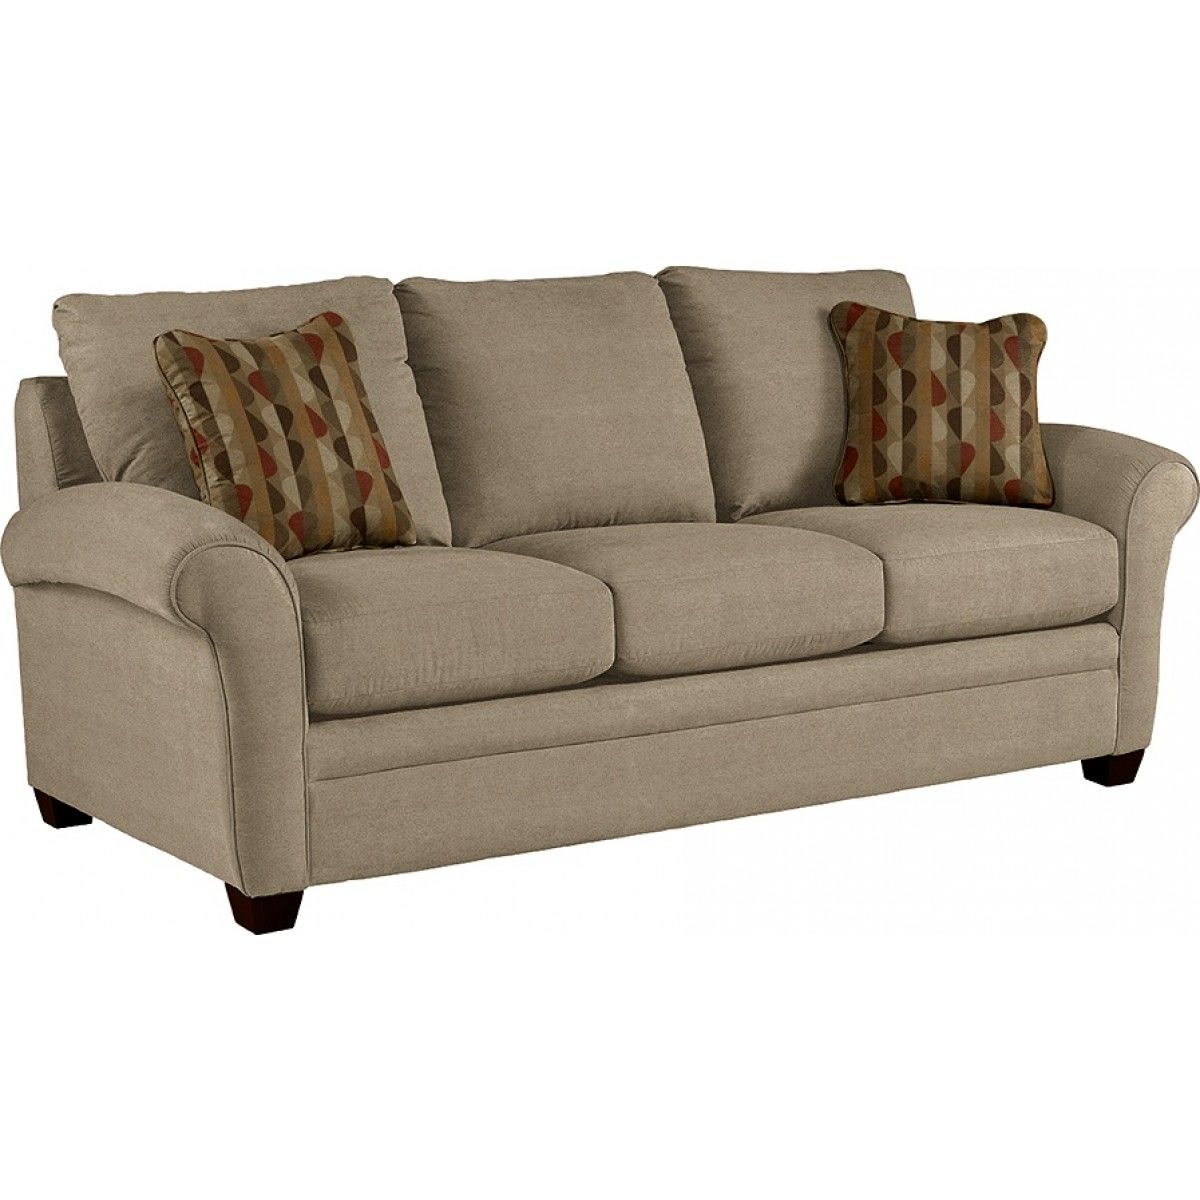 In Midland Natalie Sofa Vandemere Decor Ideas Sofa